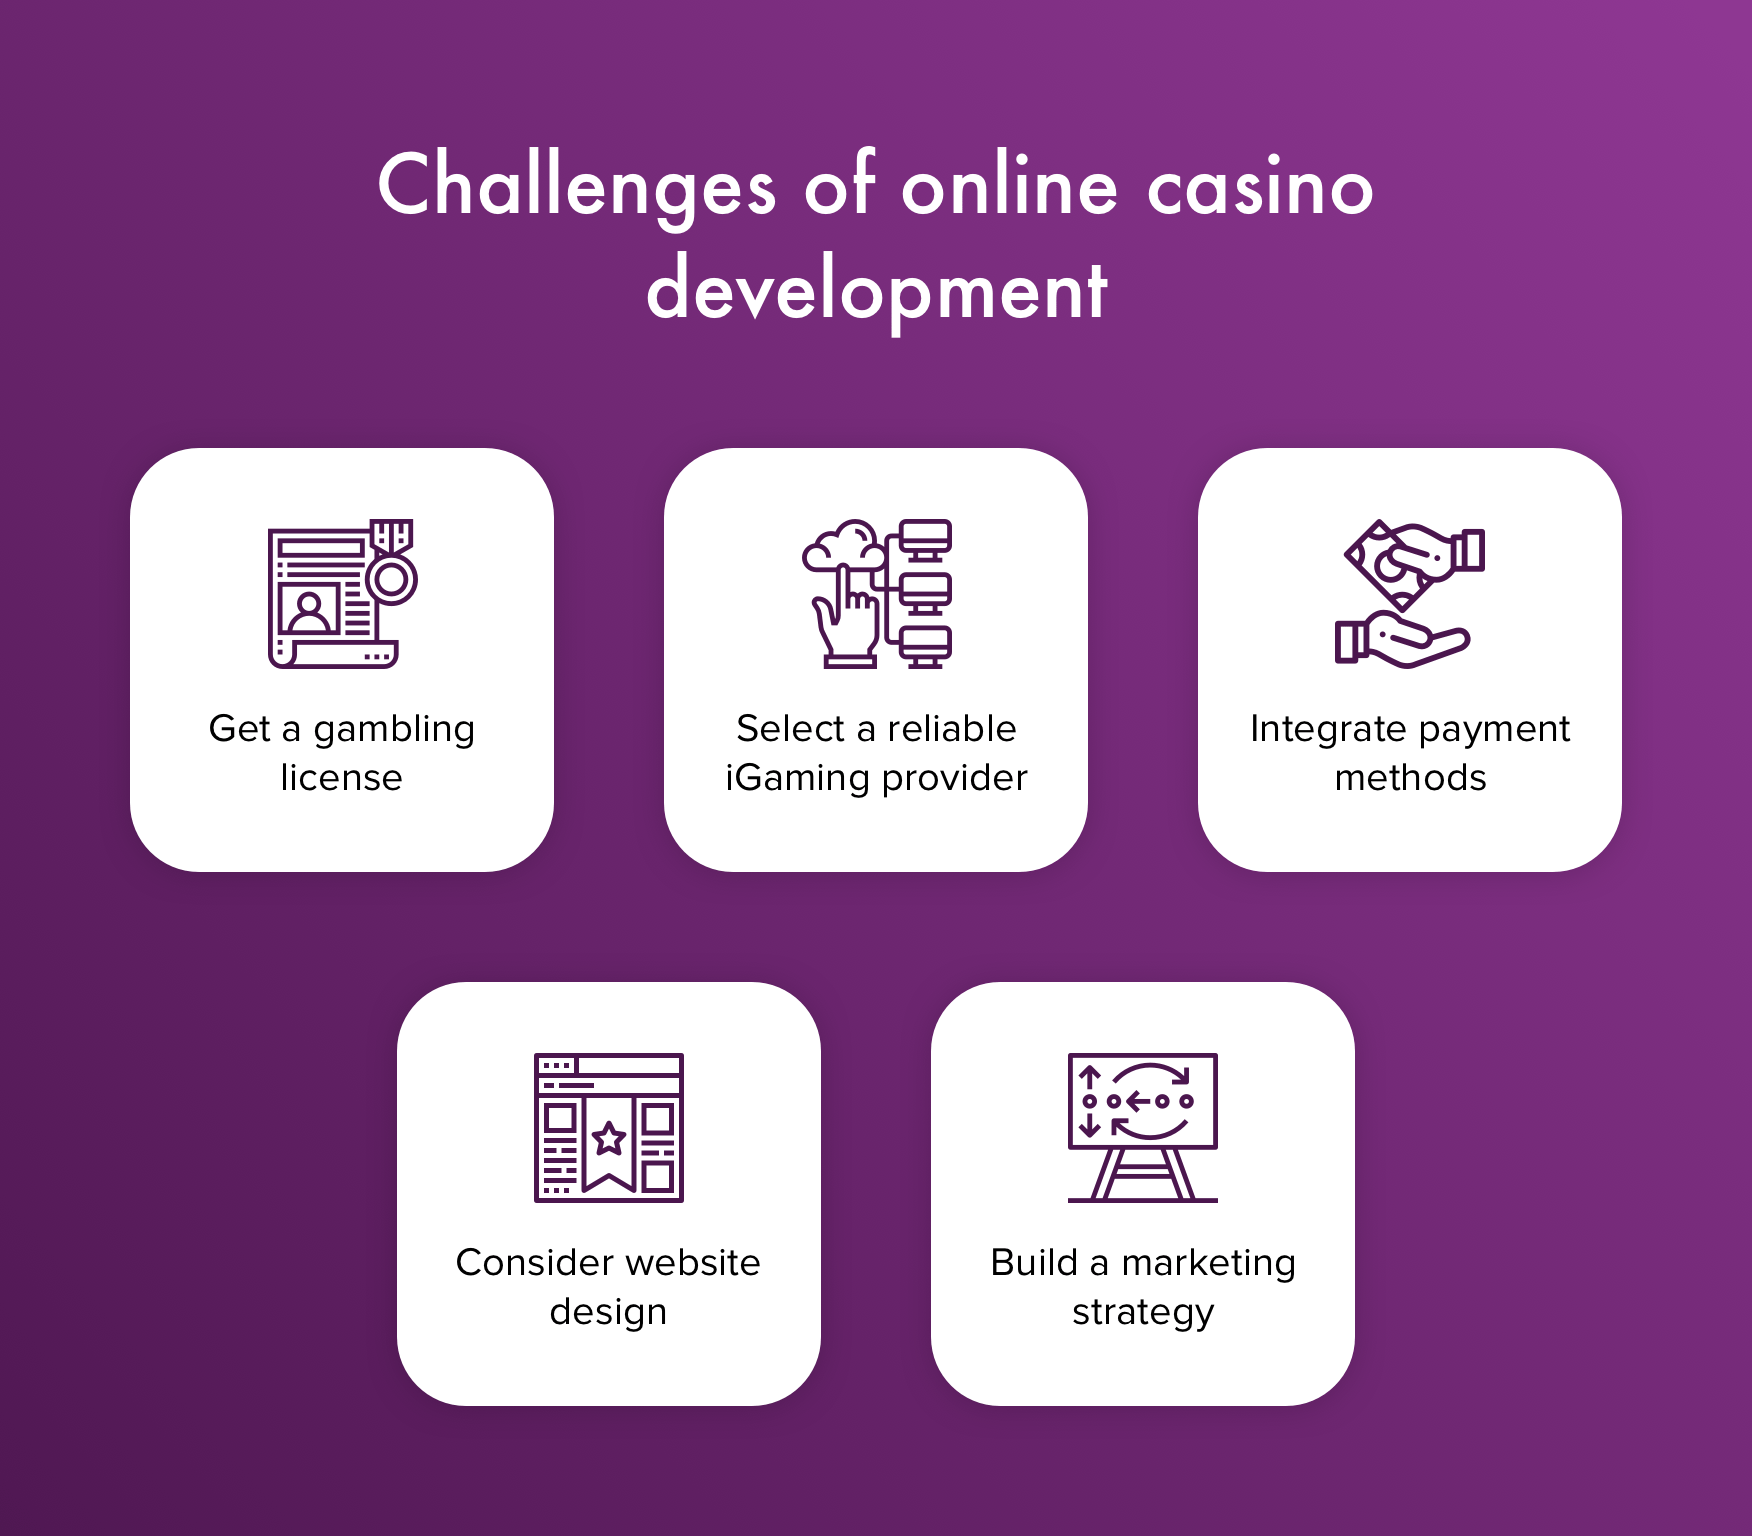 Challenges of casino website development